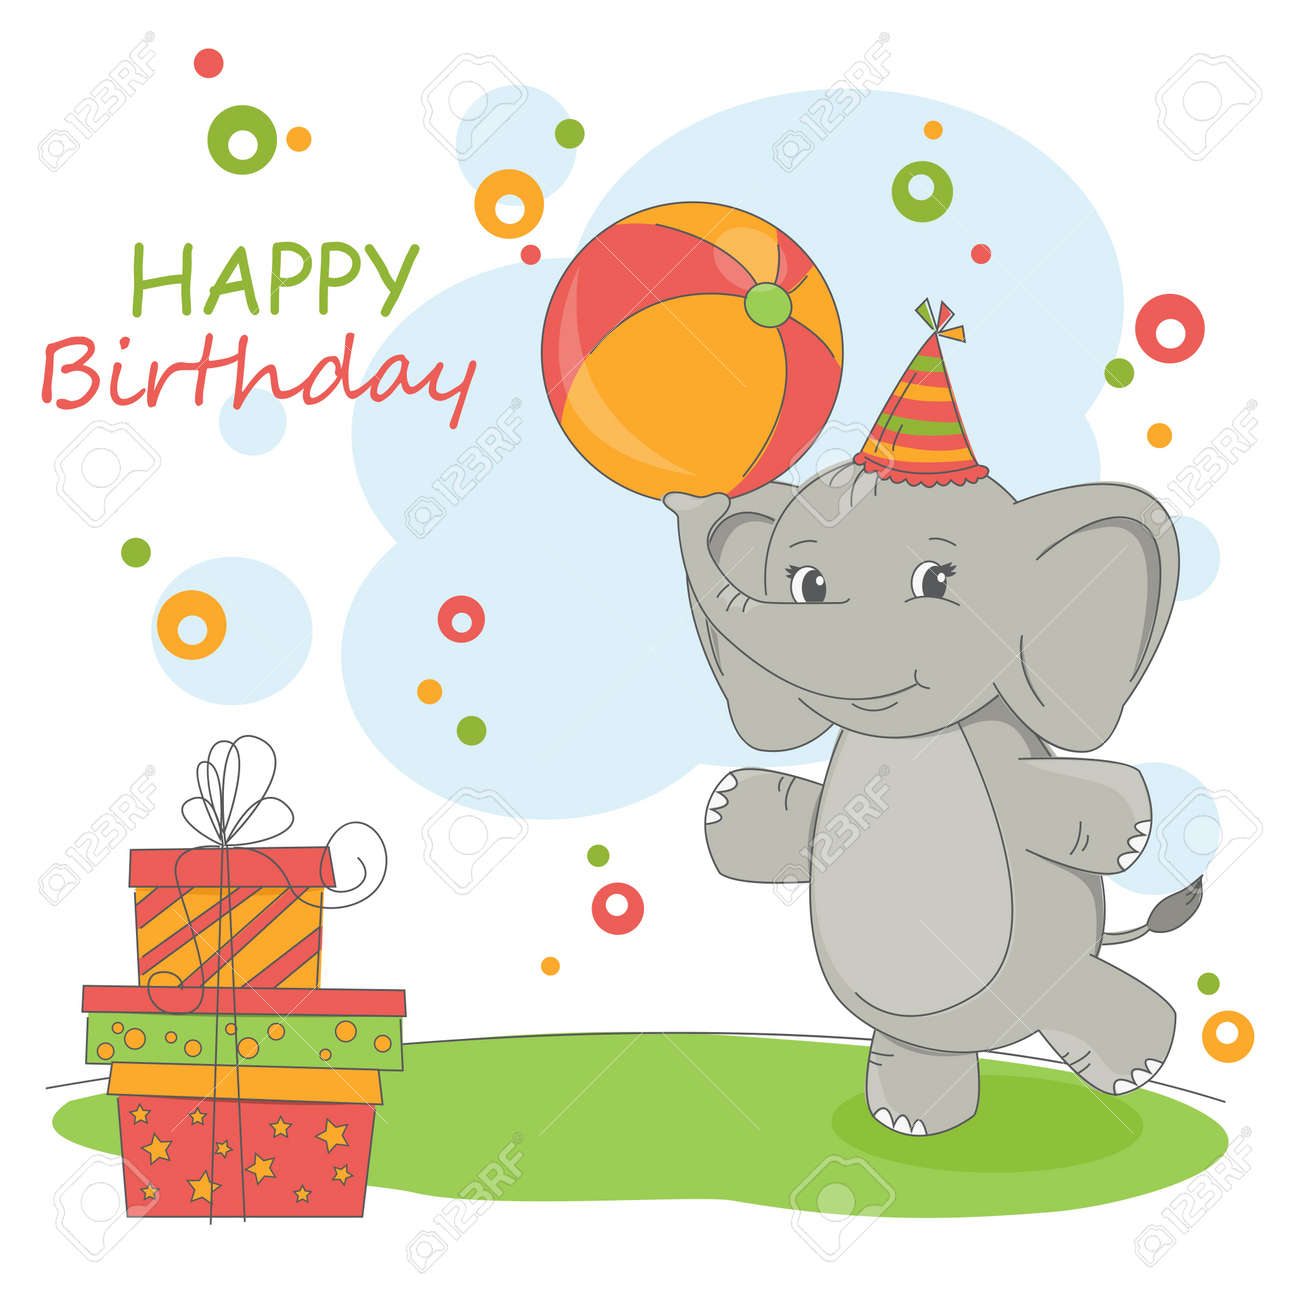 Happy Birthday Card Colorful Illustration With Cute Elephant And Gift Stock Vector